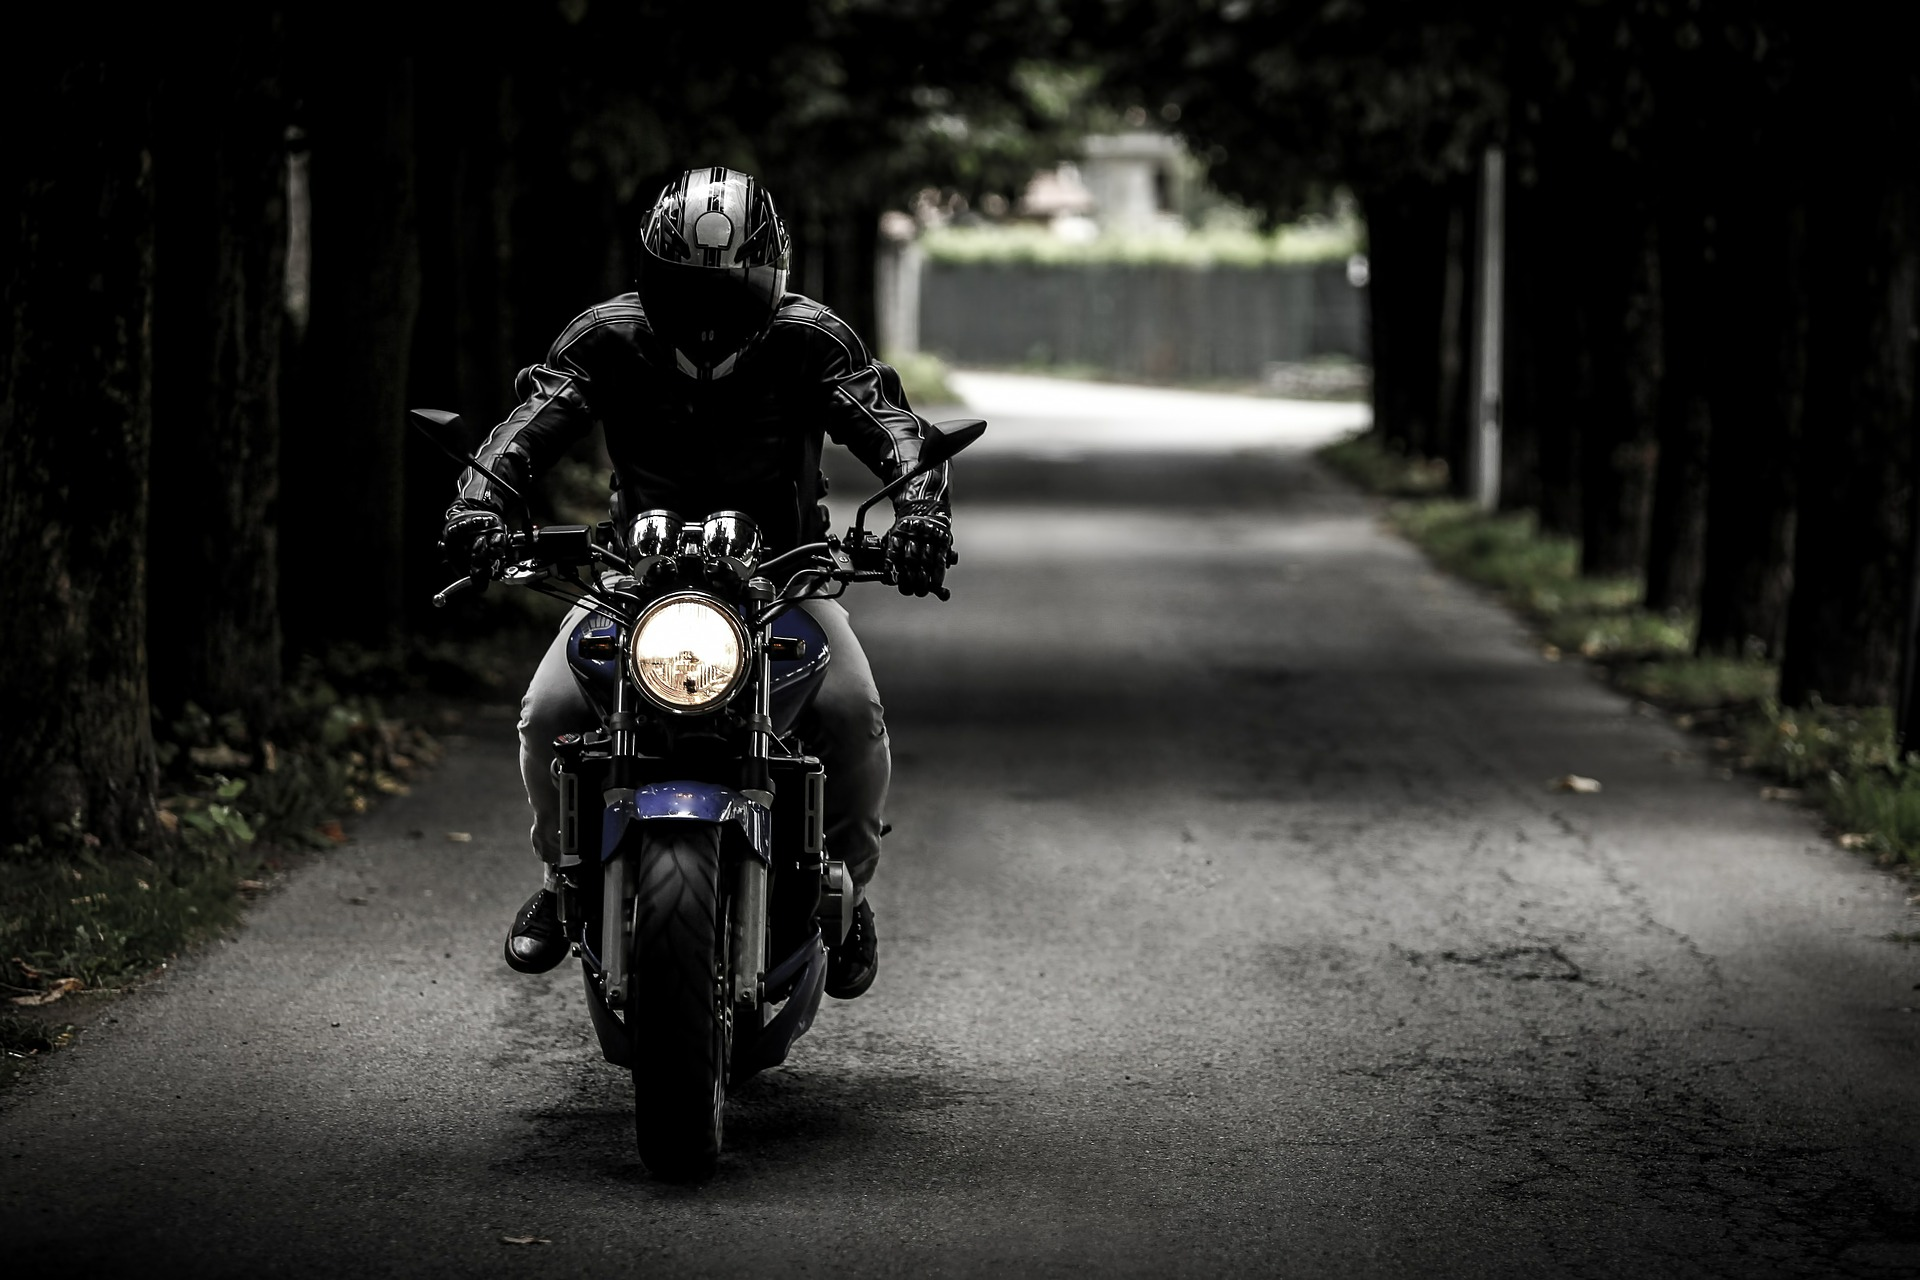 Bikers Wave Or Nod, Do You Do It? - The Wanderlost Biker